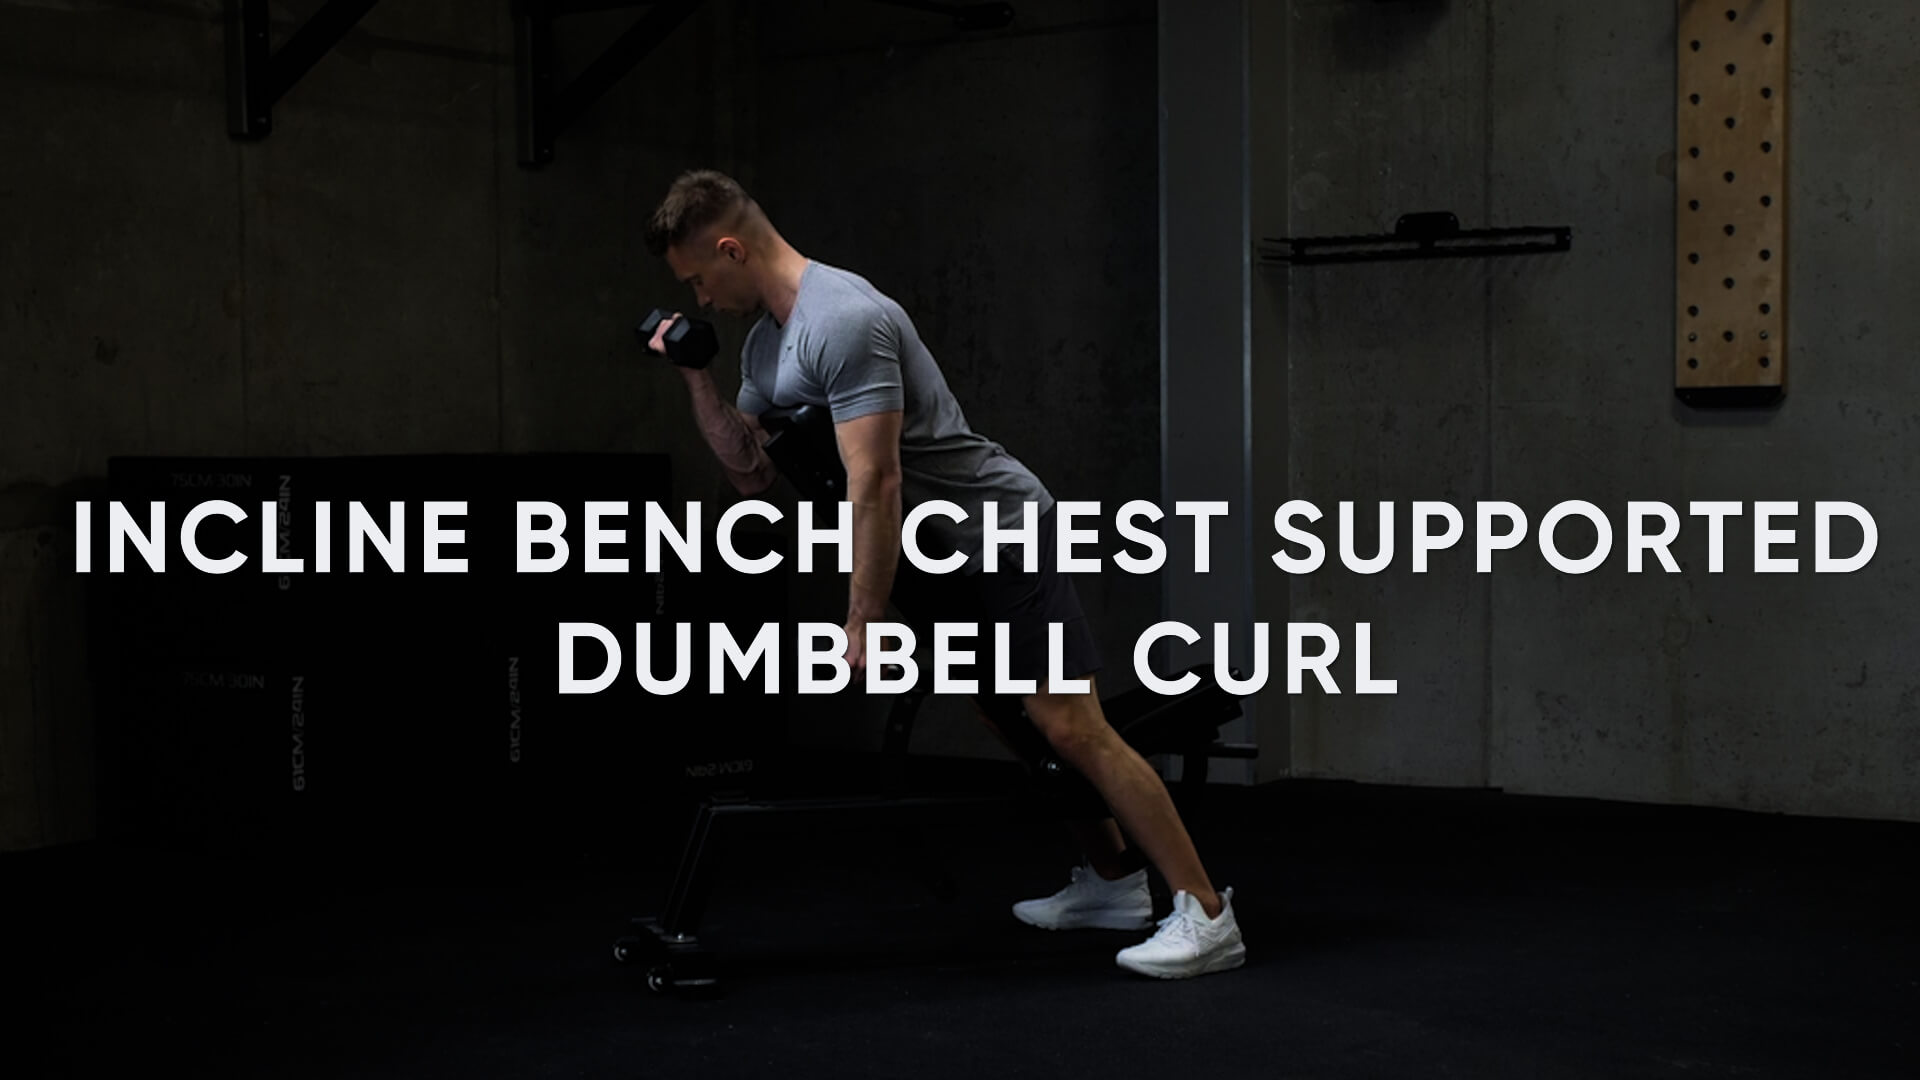 Incline Bench Chest Supported Dumbbell Curl